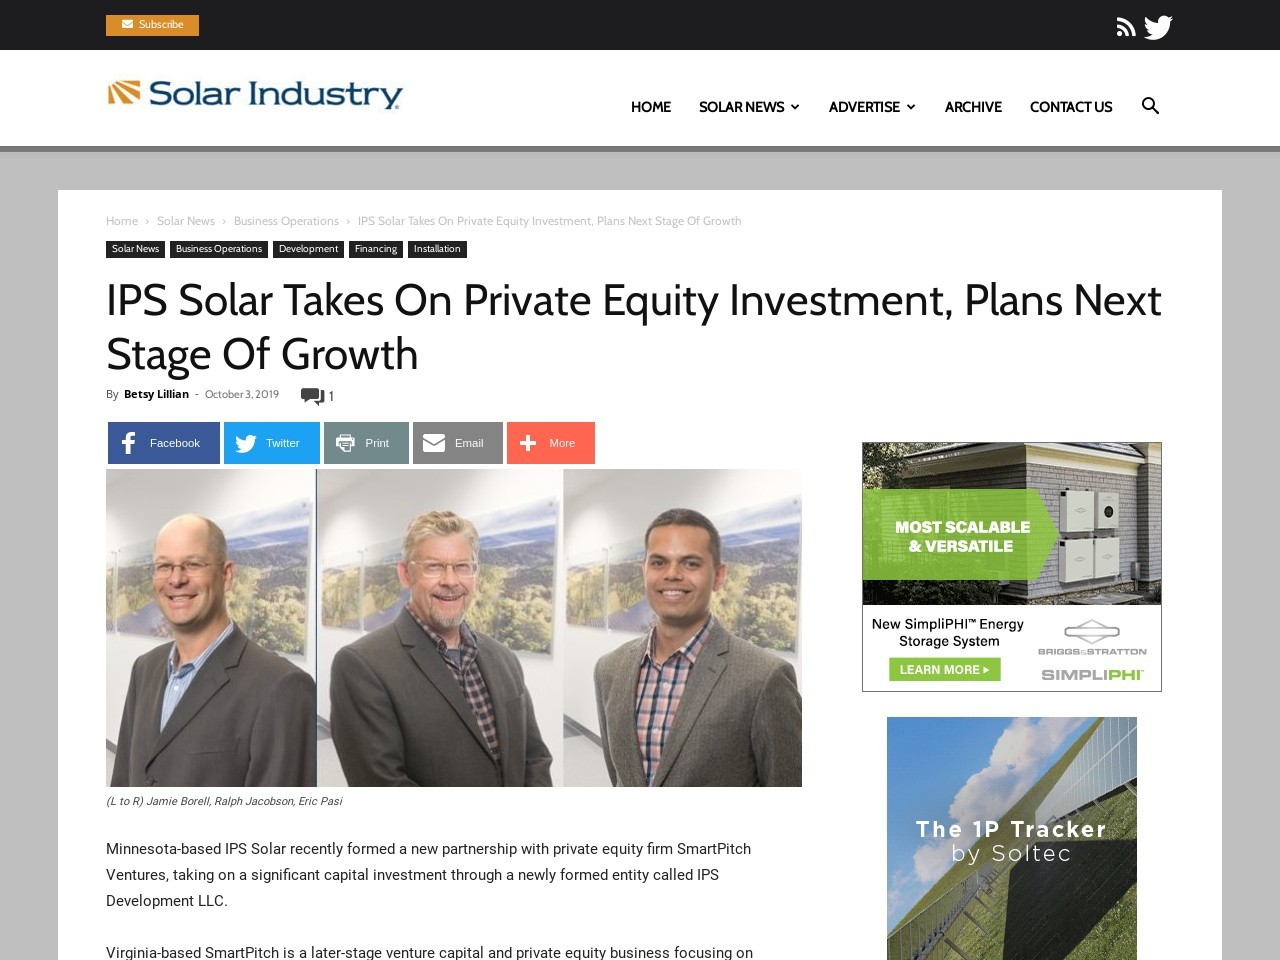 IPS Solar Takes On Private Equity Investment, Plans Next Stage Of Growth